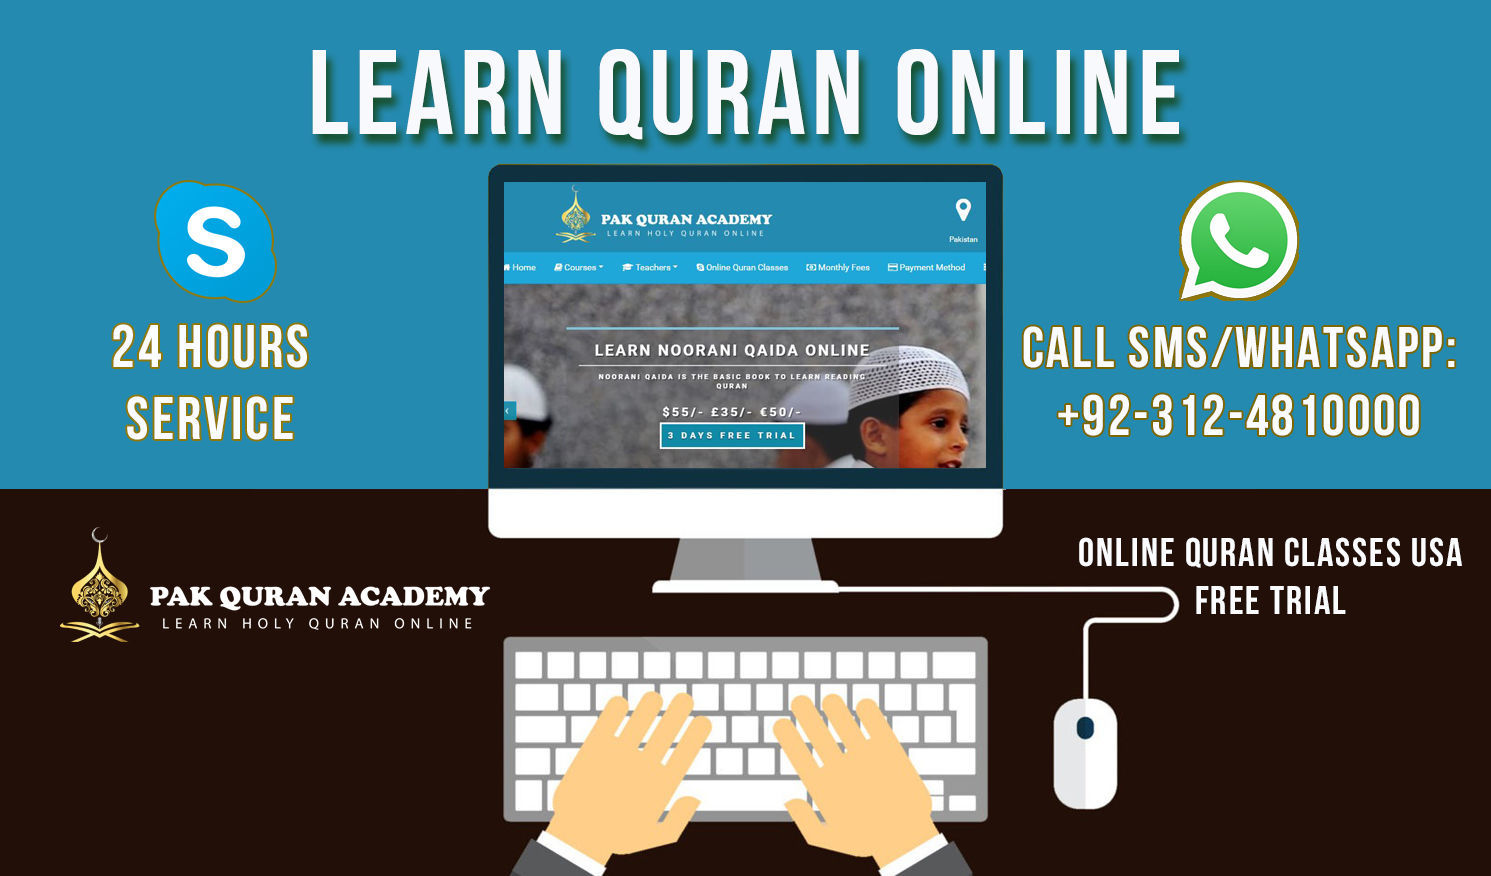 Things That You Need To Know When You Learn Quran Online